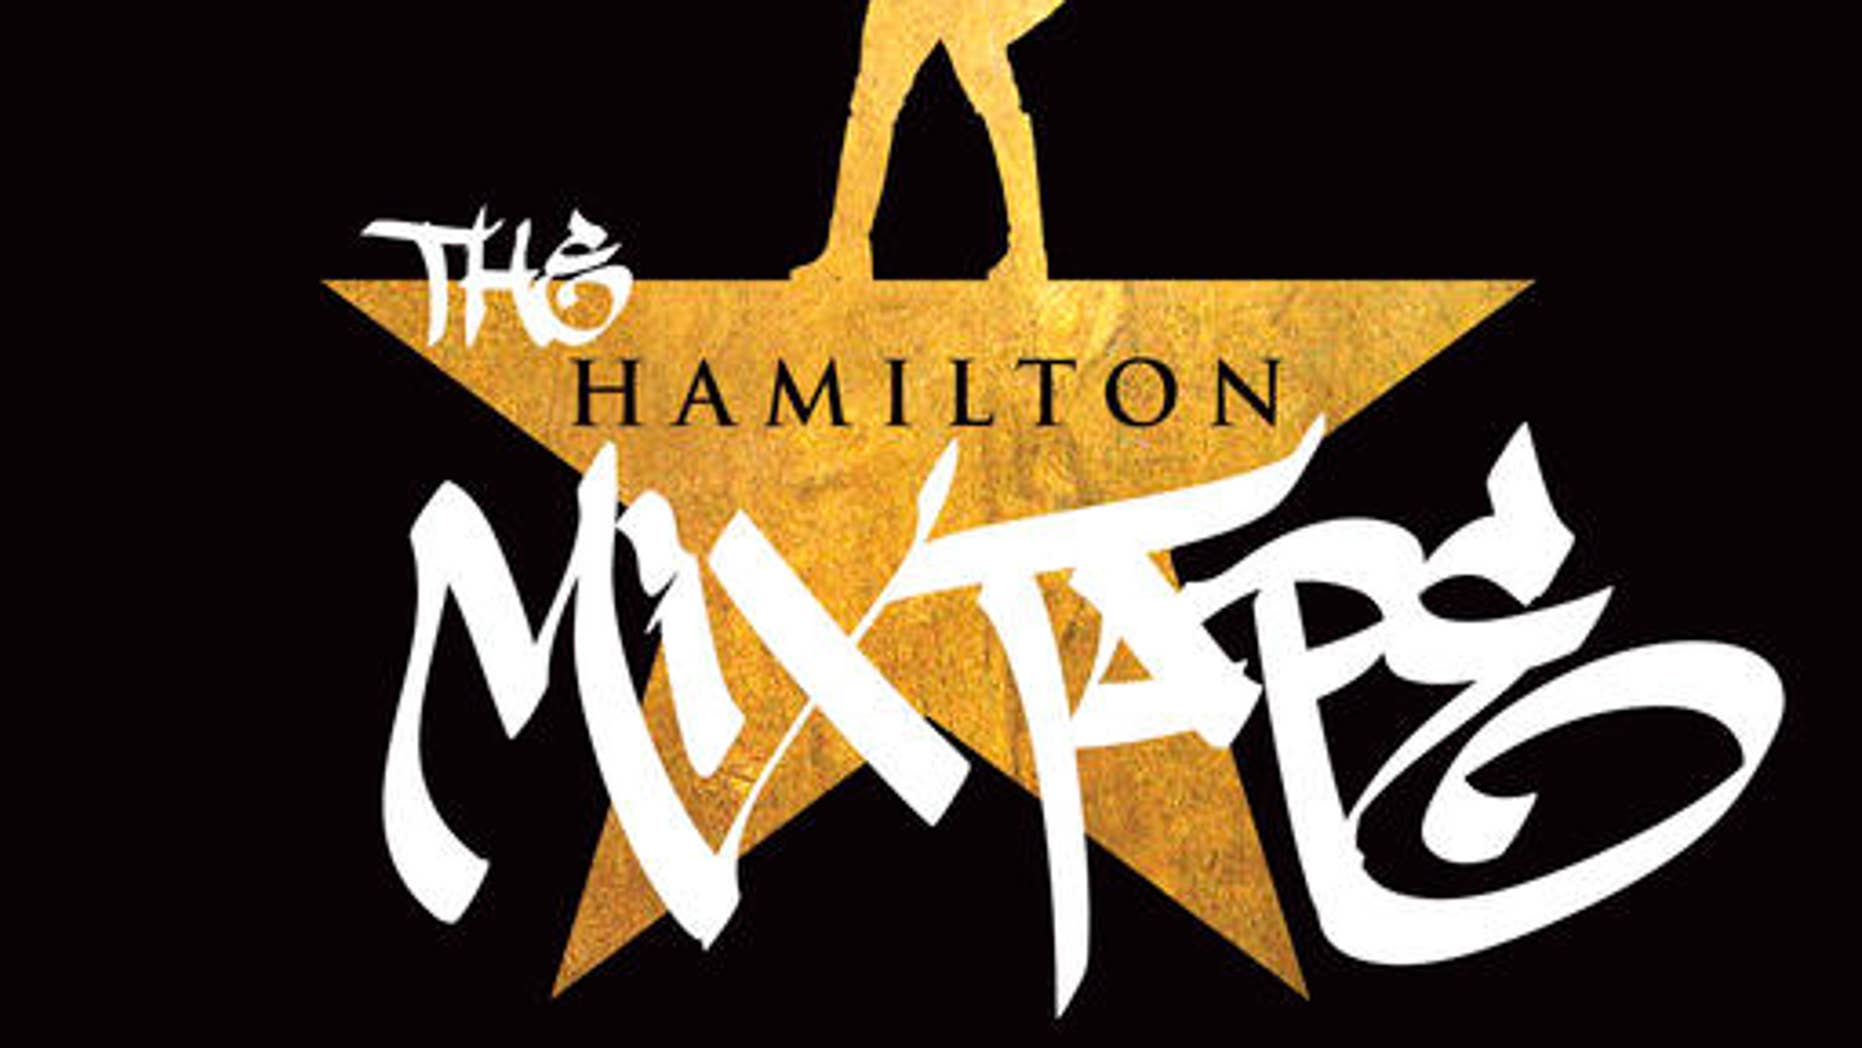 """This CD cover image released by Atlantic Records shows """"The Hamilton Mixtape."""" The 23-track âHamilton Mixtape,â set for release Friday, features covers by such artists as Usher, Kelly Clarkson, Nas, Ben Folds, Alicia Keys, Ashanti, John Legend, Sia, Common, Wiz Khalifa, Queen Latifah, The Roots, Jill Scott and Busta Rhymes. (Atlantic Records via AP)"""